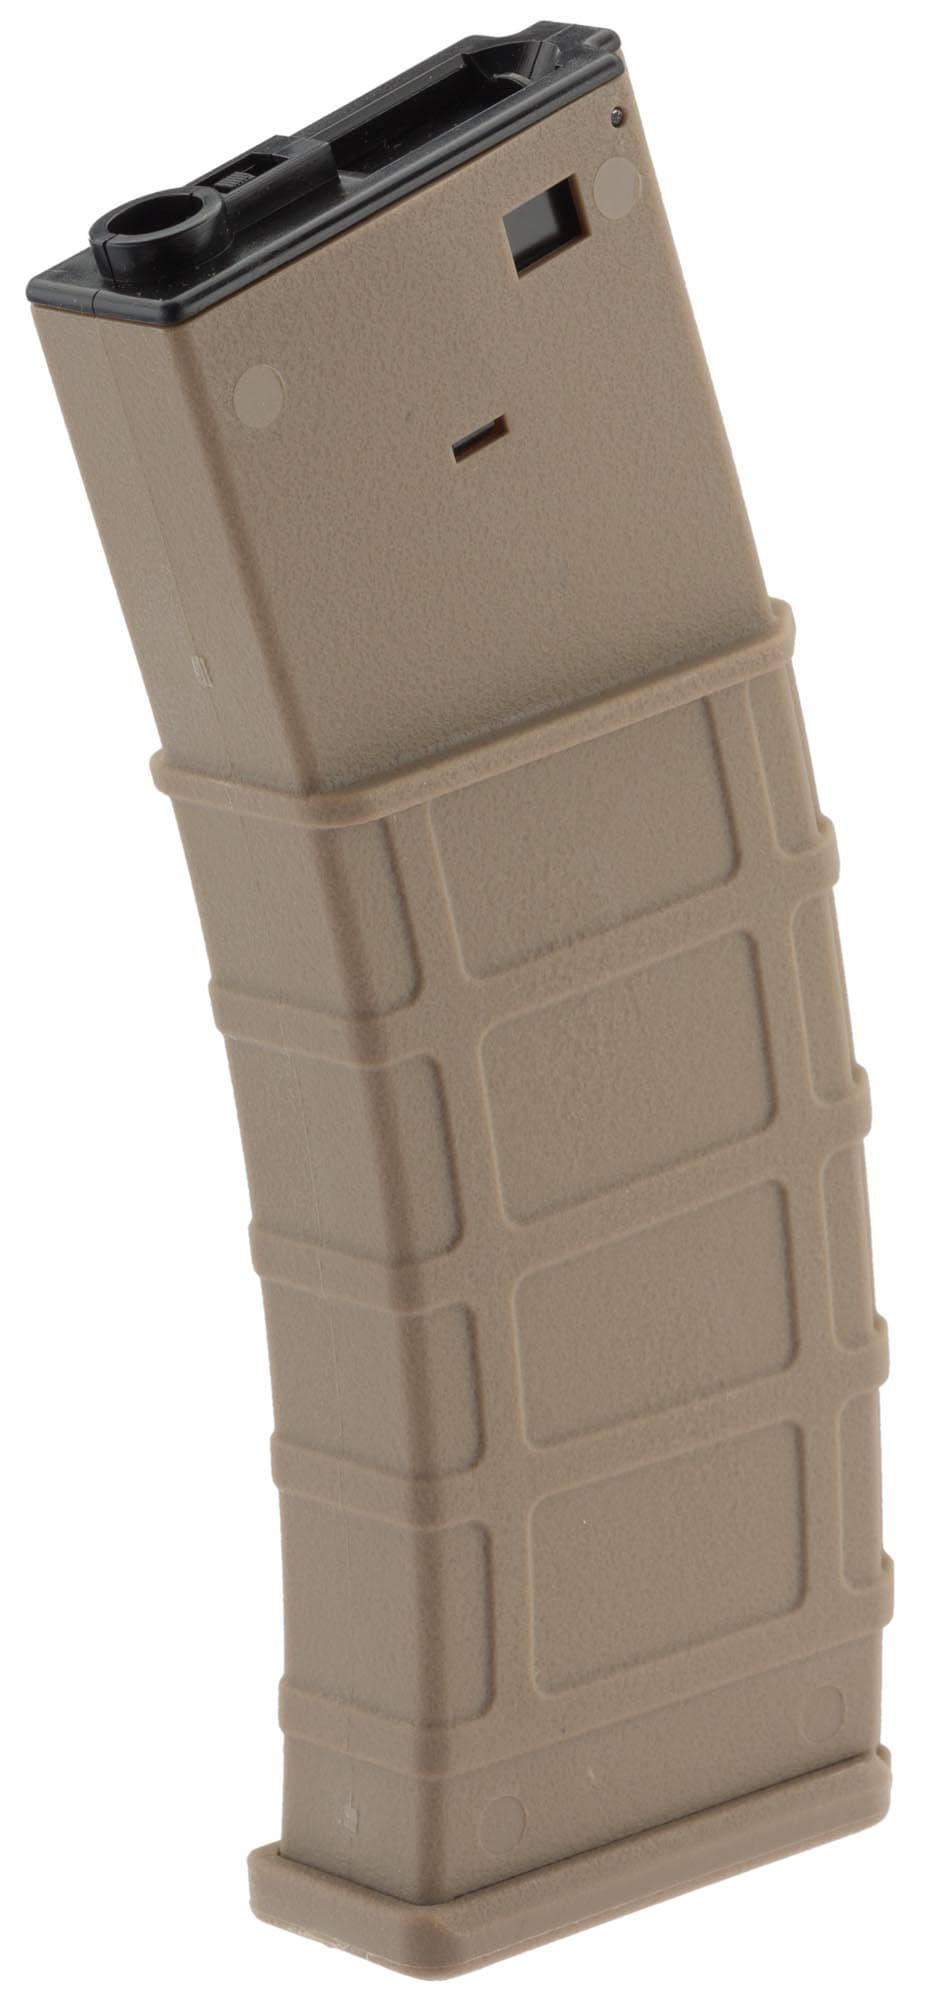 Photo Airsoft Magazine Polymer Flash Hi Cap 360 rds for M4-M16 (made by Lonex) - Tan